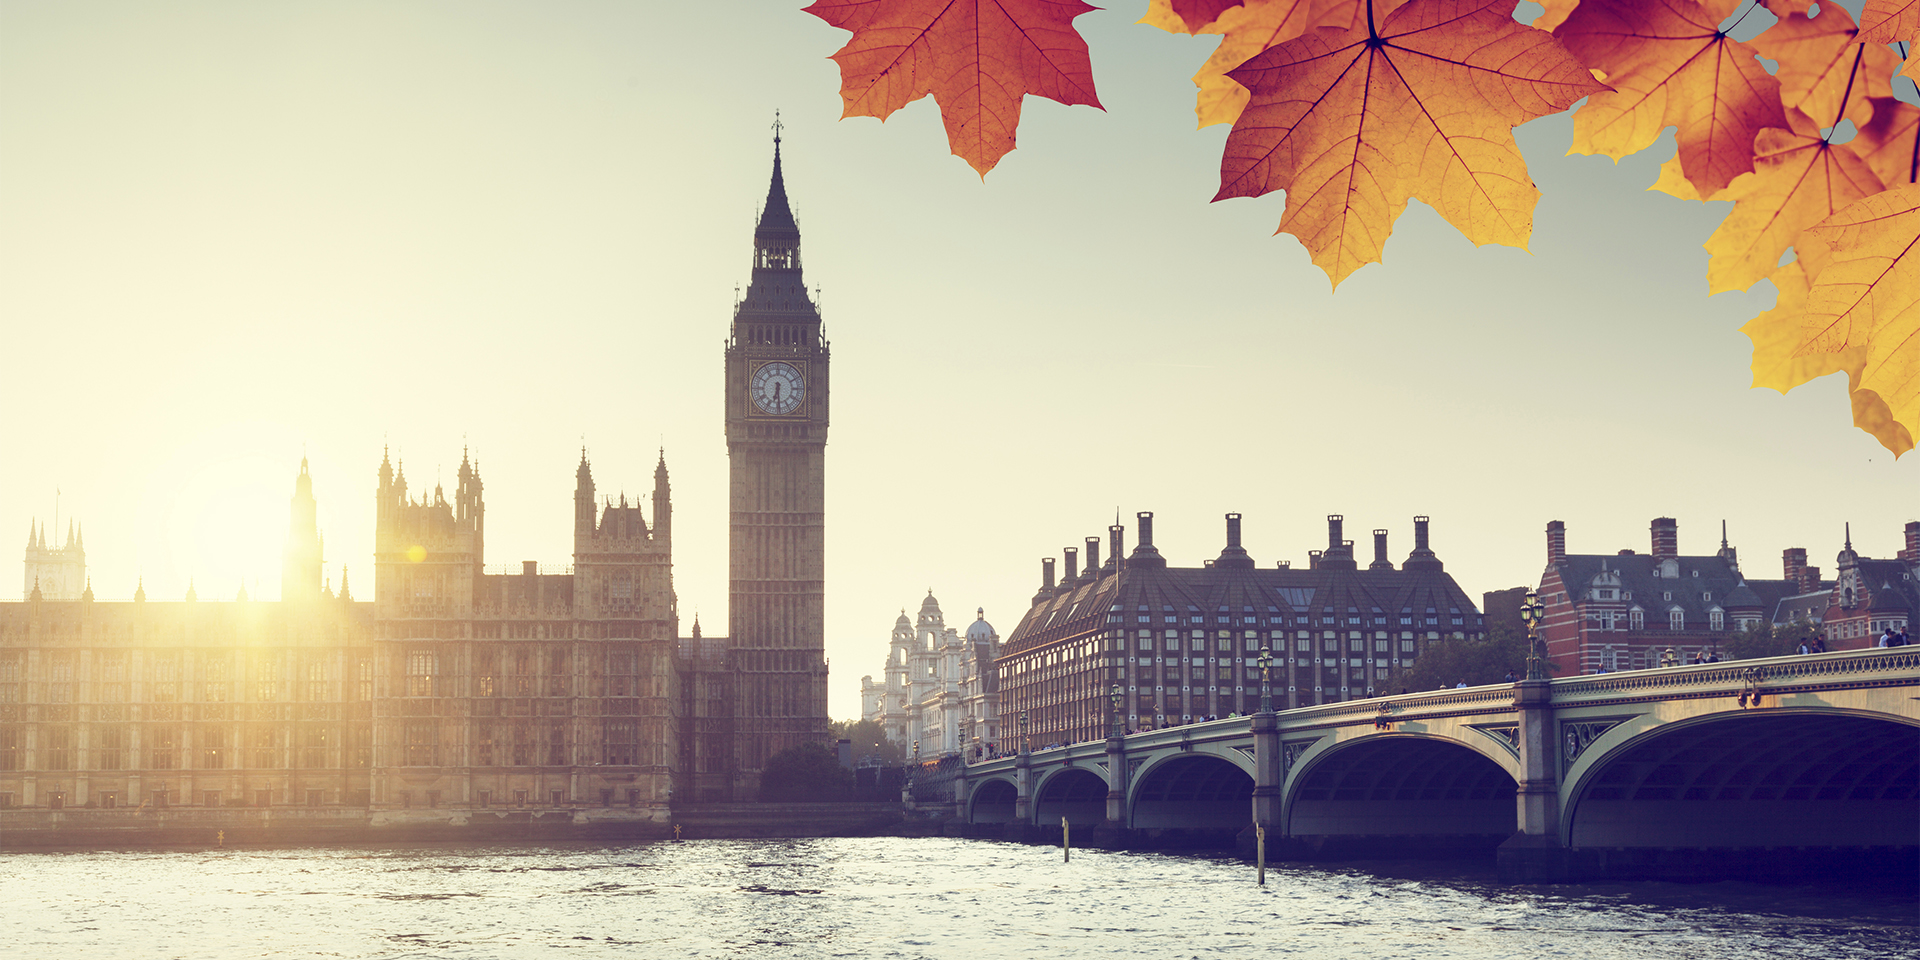 autumn leaves and Westminster, London, UK